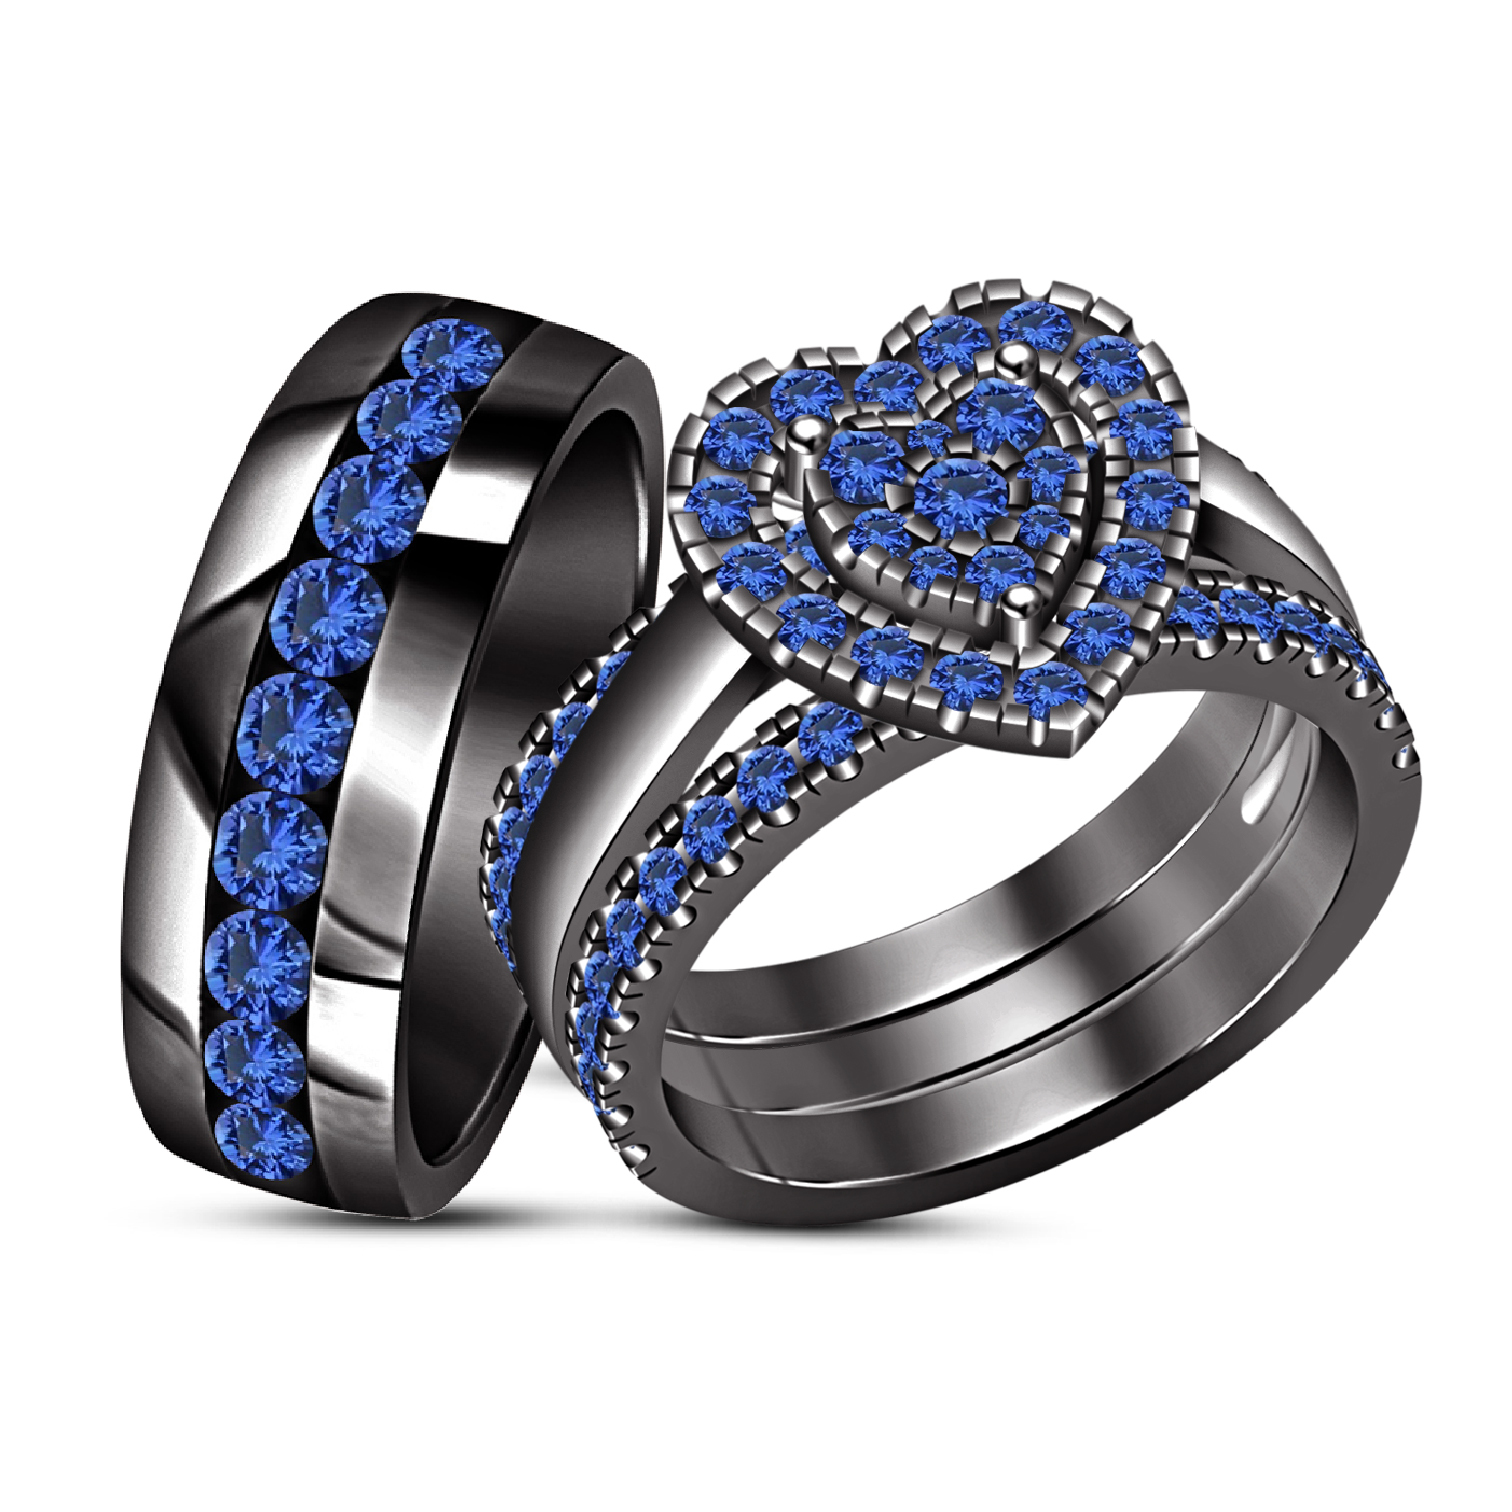 Blue Sapphire Black Gold Plated His & Her Engagement Ring Wedding Band Trio Set